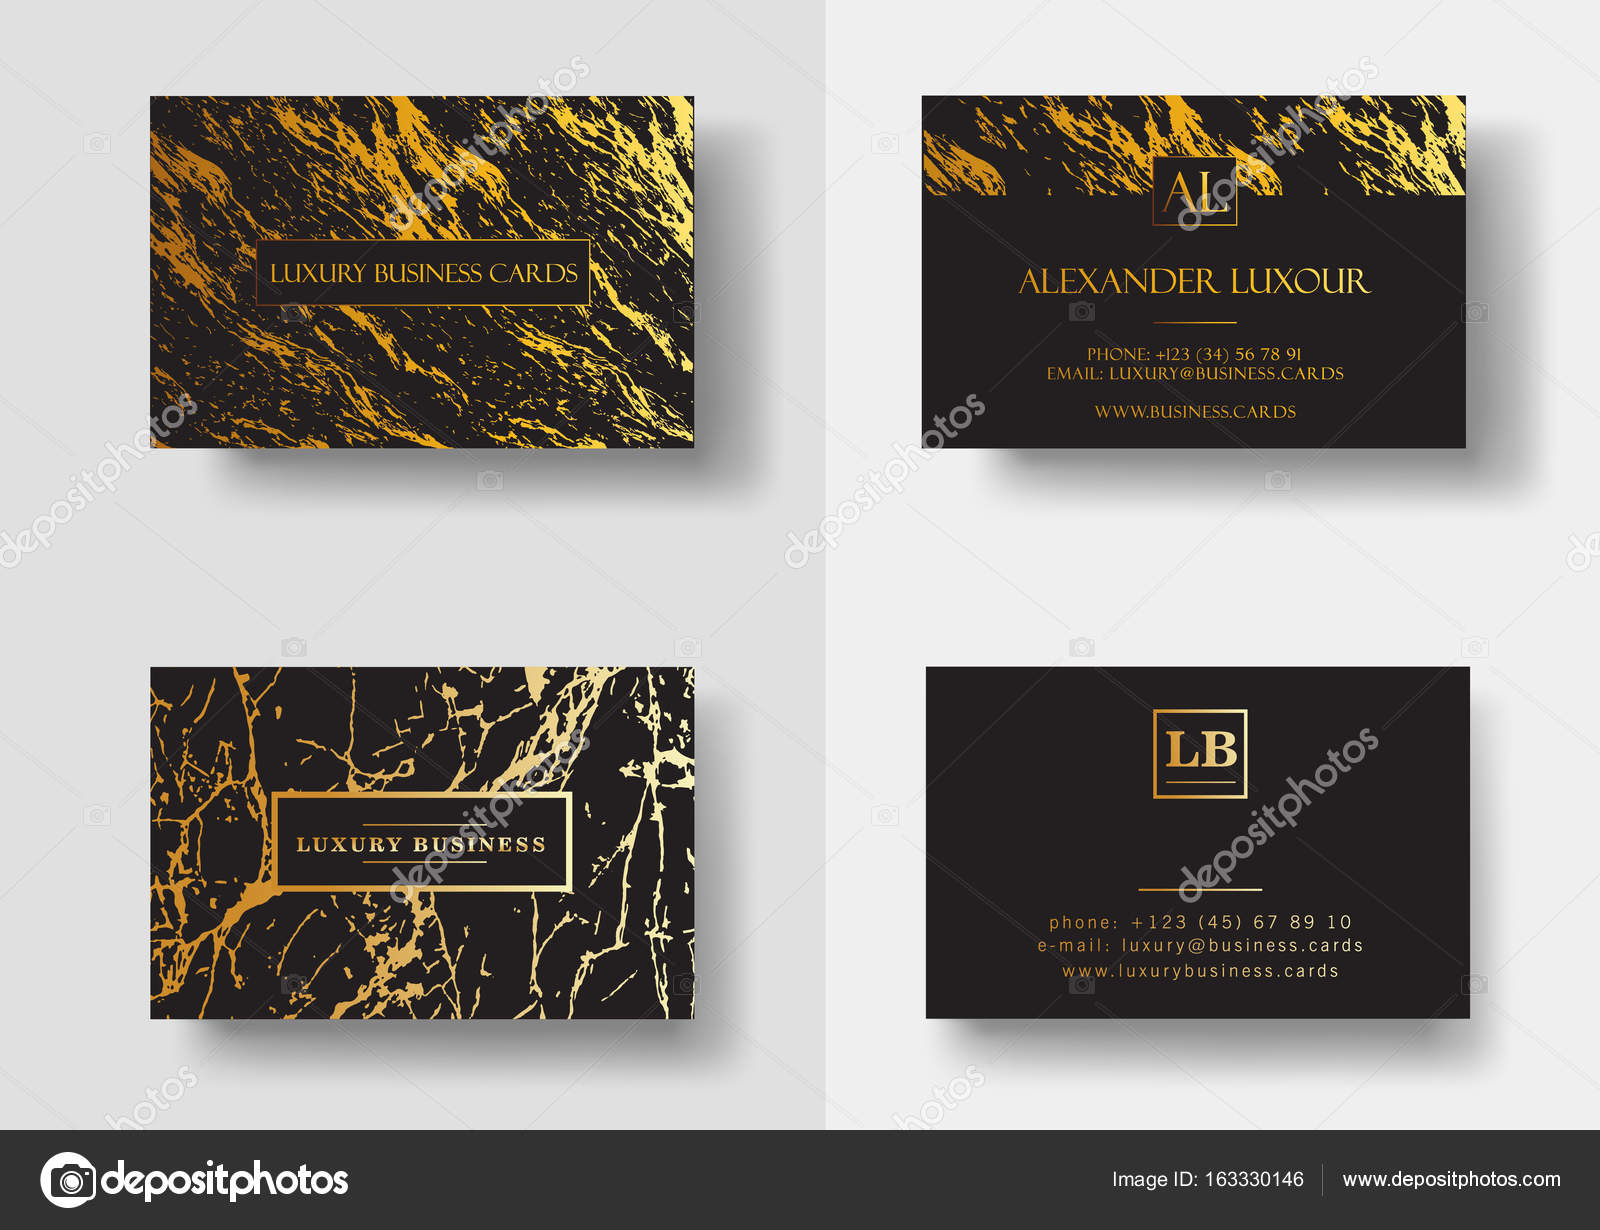 Elegant black luxury business cards with marble texture and gold elegant black luxury business cards with marble texture and gold detail vector template banner or invitation with golden foil details stopboris Gallery